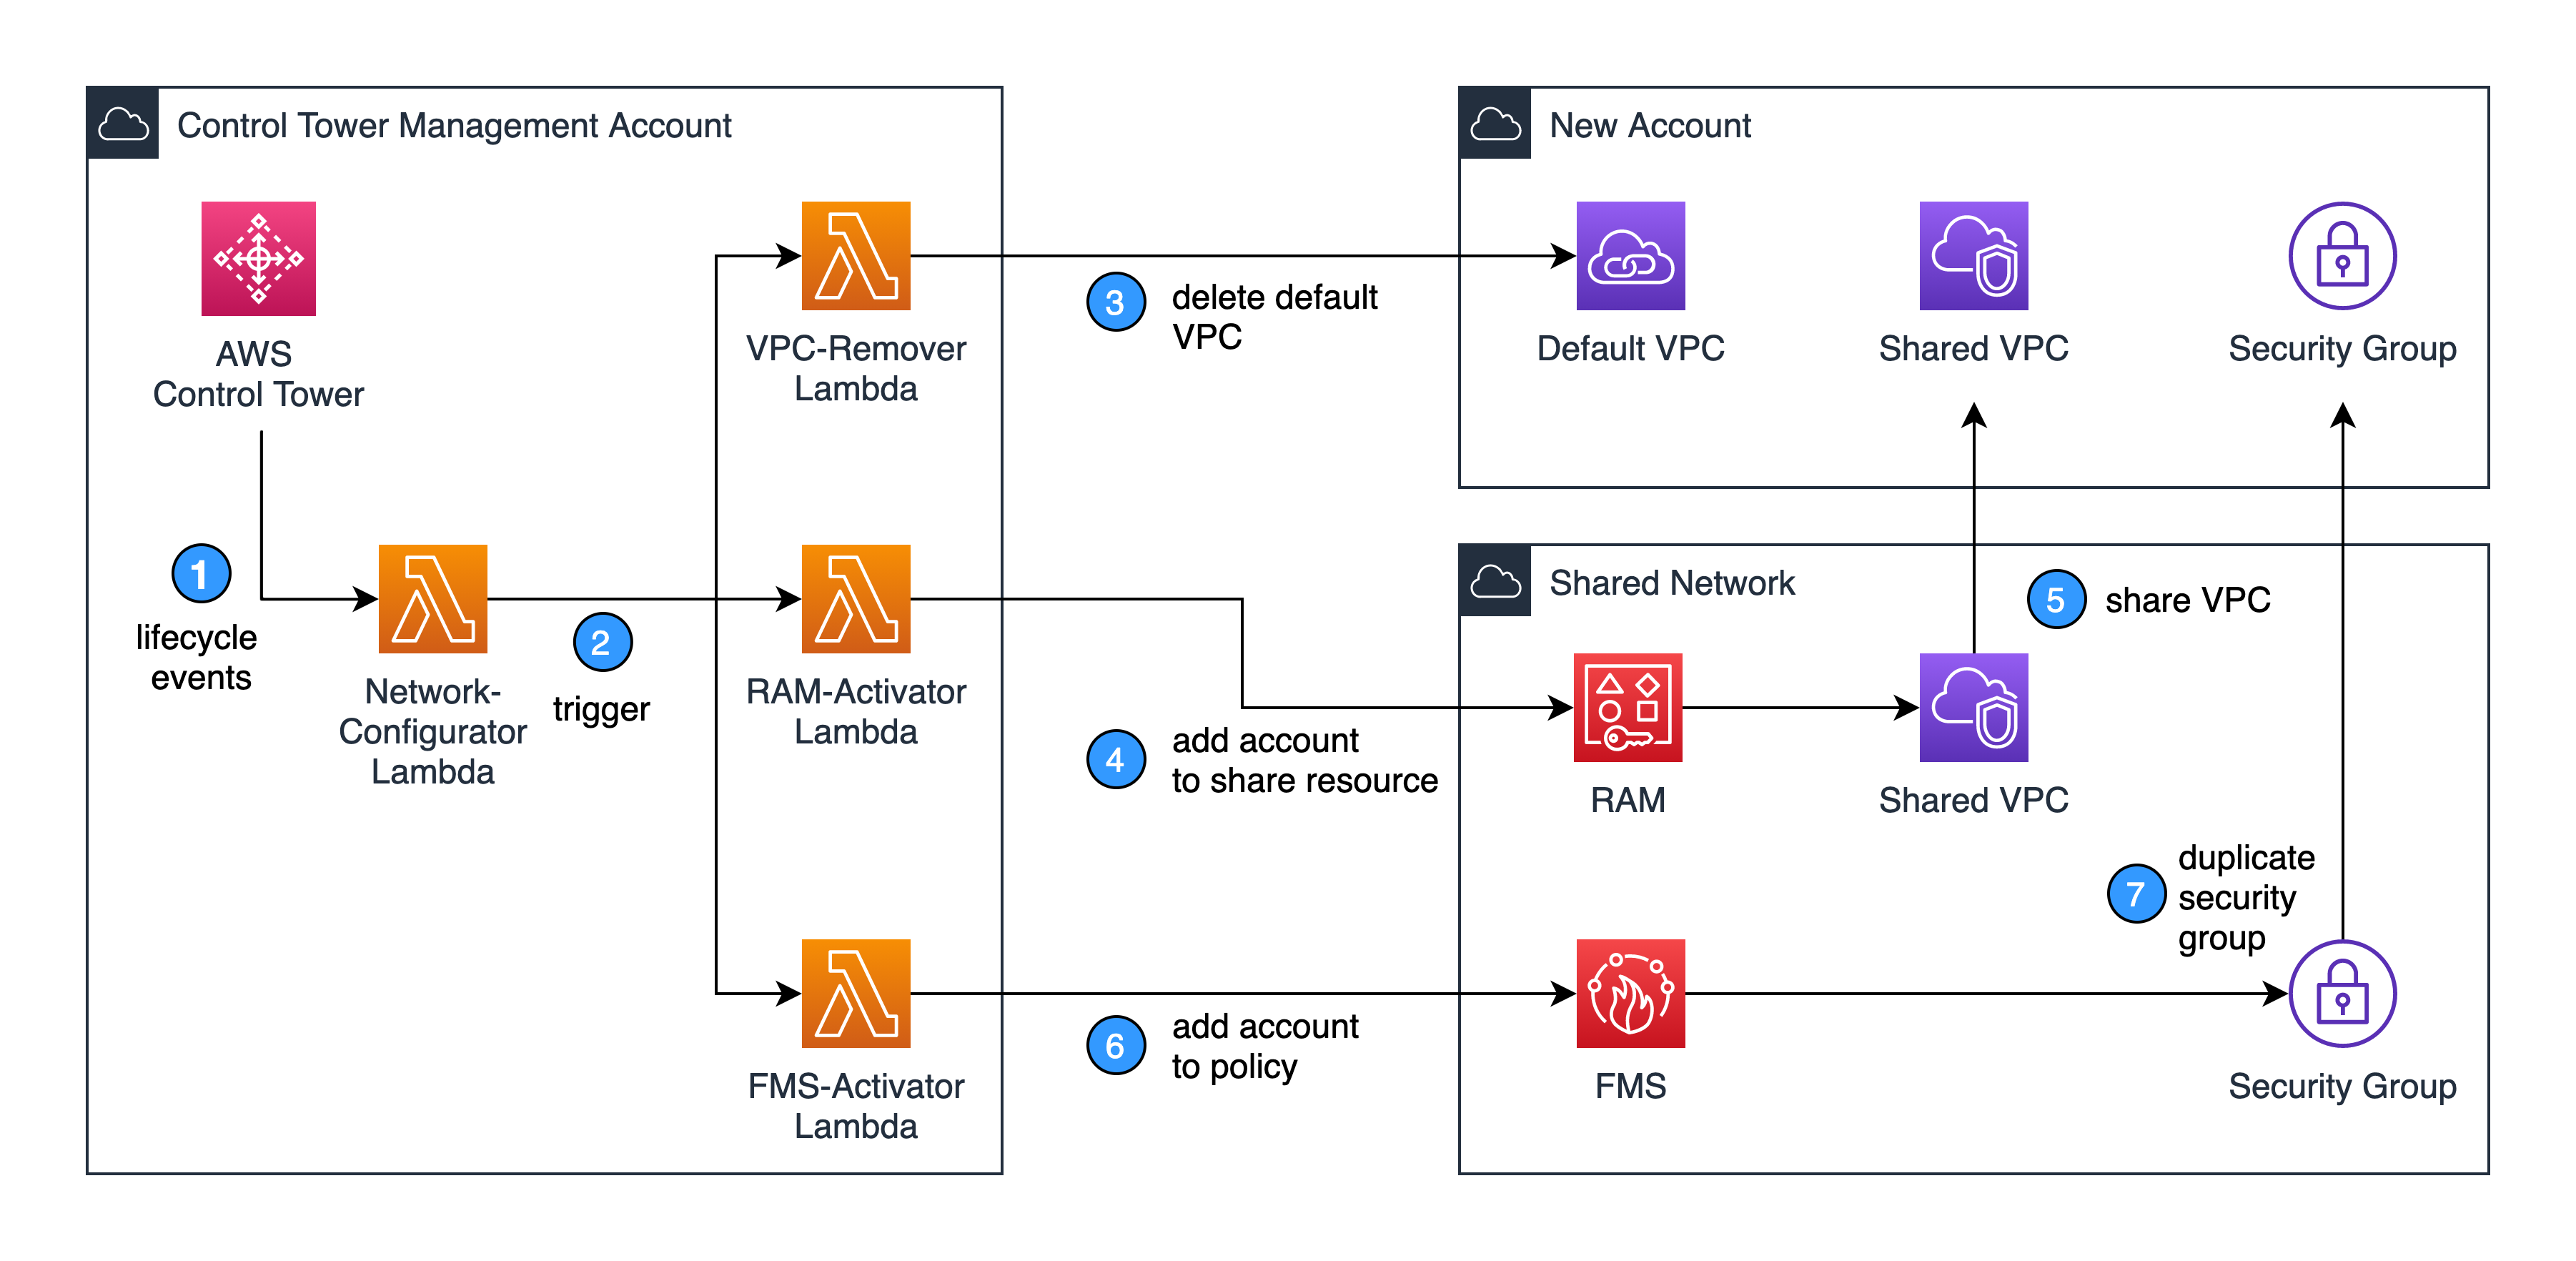 1.CreateManagedAccount lifecycle event invokes the Network-Configurator Lambda function. 2.Network-Configurator Lambda triggers three separate Lambda. 3.VPC-Remover Lambda function deletes the default VPC. 4.RAM-Activator Lambda function adds the new account ID as a member of the shared network account's resource share. 5.Resource Access Manager shares the VPC to the new account. 6.FMS-Activator Lambda function adds the new account ID into the primary security group policy. 7.Firewall Manager creates the security group on each VPC in the new account automatically.